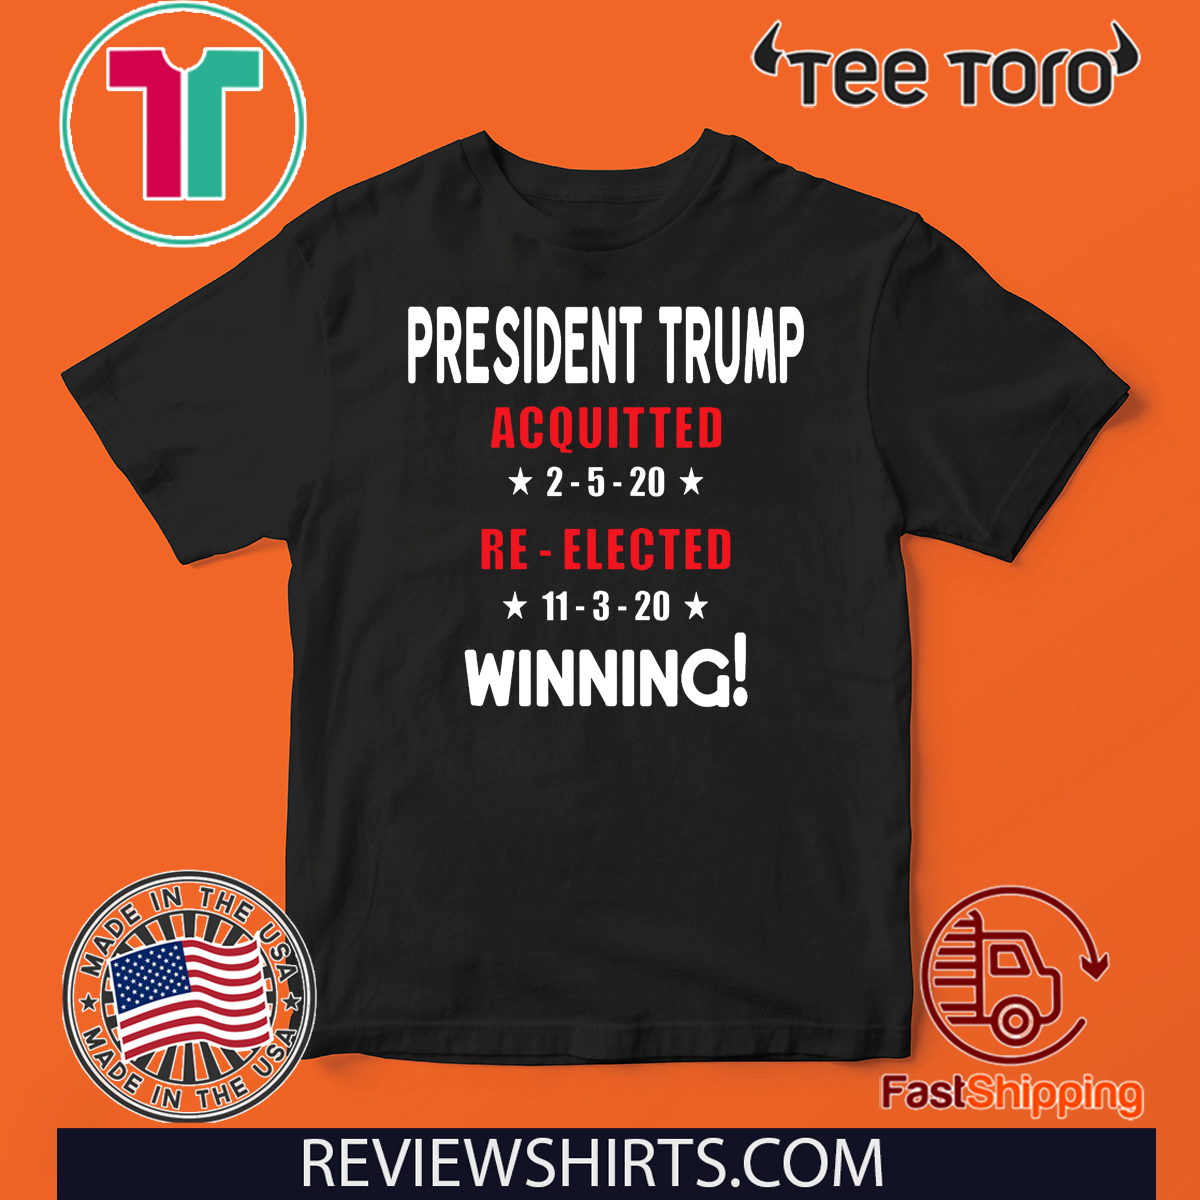 President Trump Acquitted Re-Elected Pro Trump Acquittal Tee Shirt